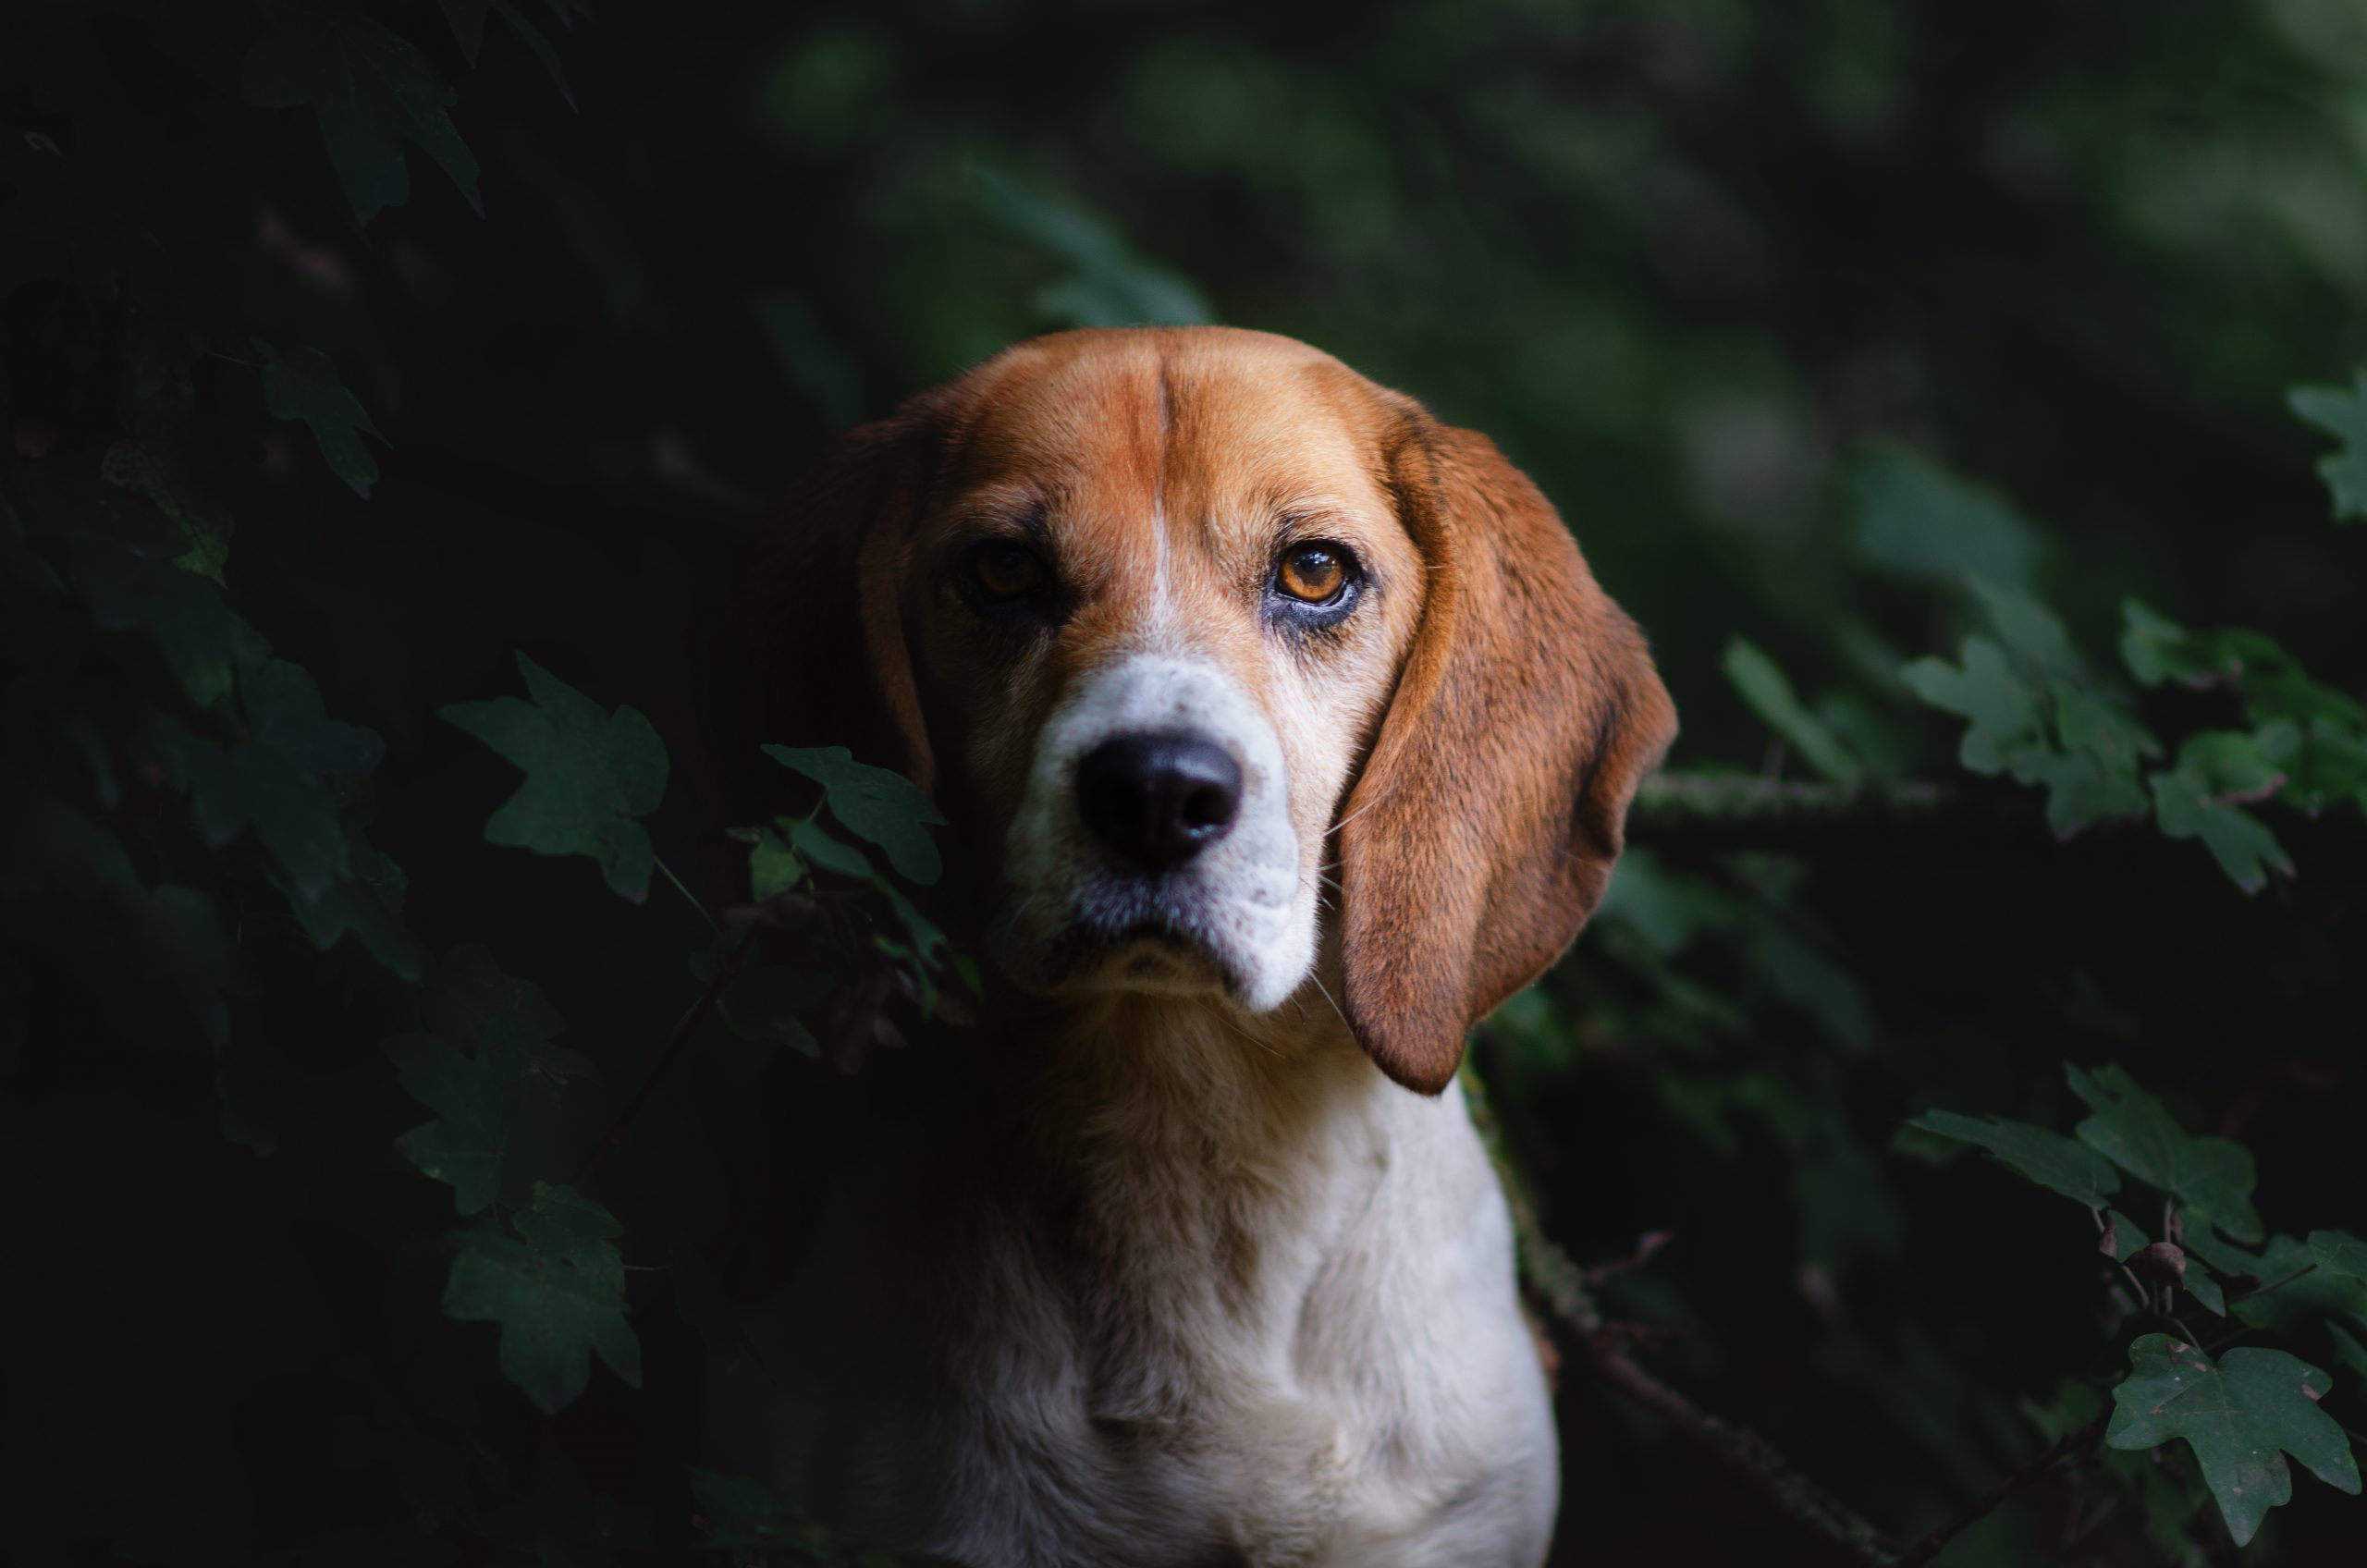 Beagle chien photographie art photographe canin arbres clair obscur Cani look PhoDOGraphy